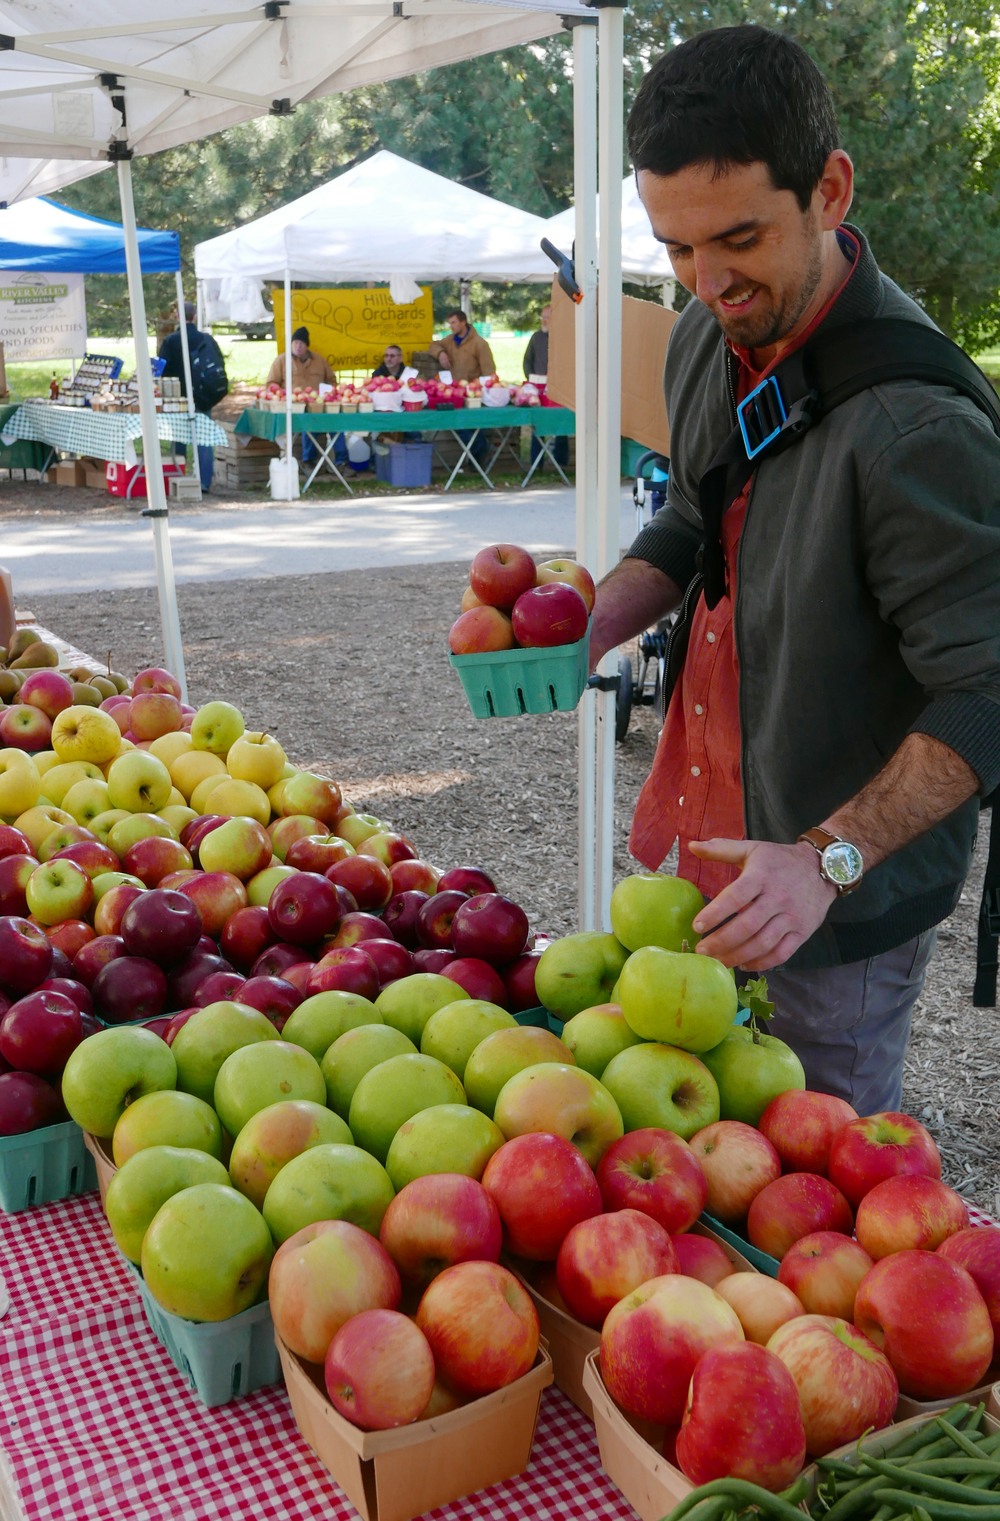 Chef Sean Spradlin picking out apples at the Mick Klug Farm stand